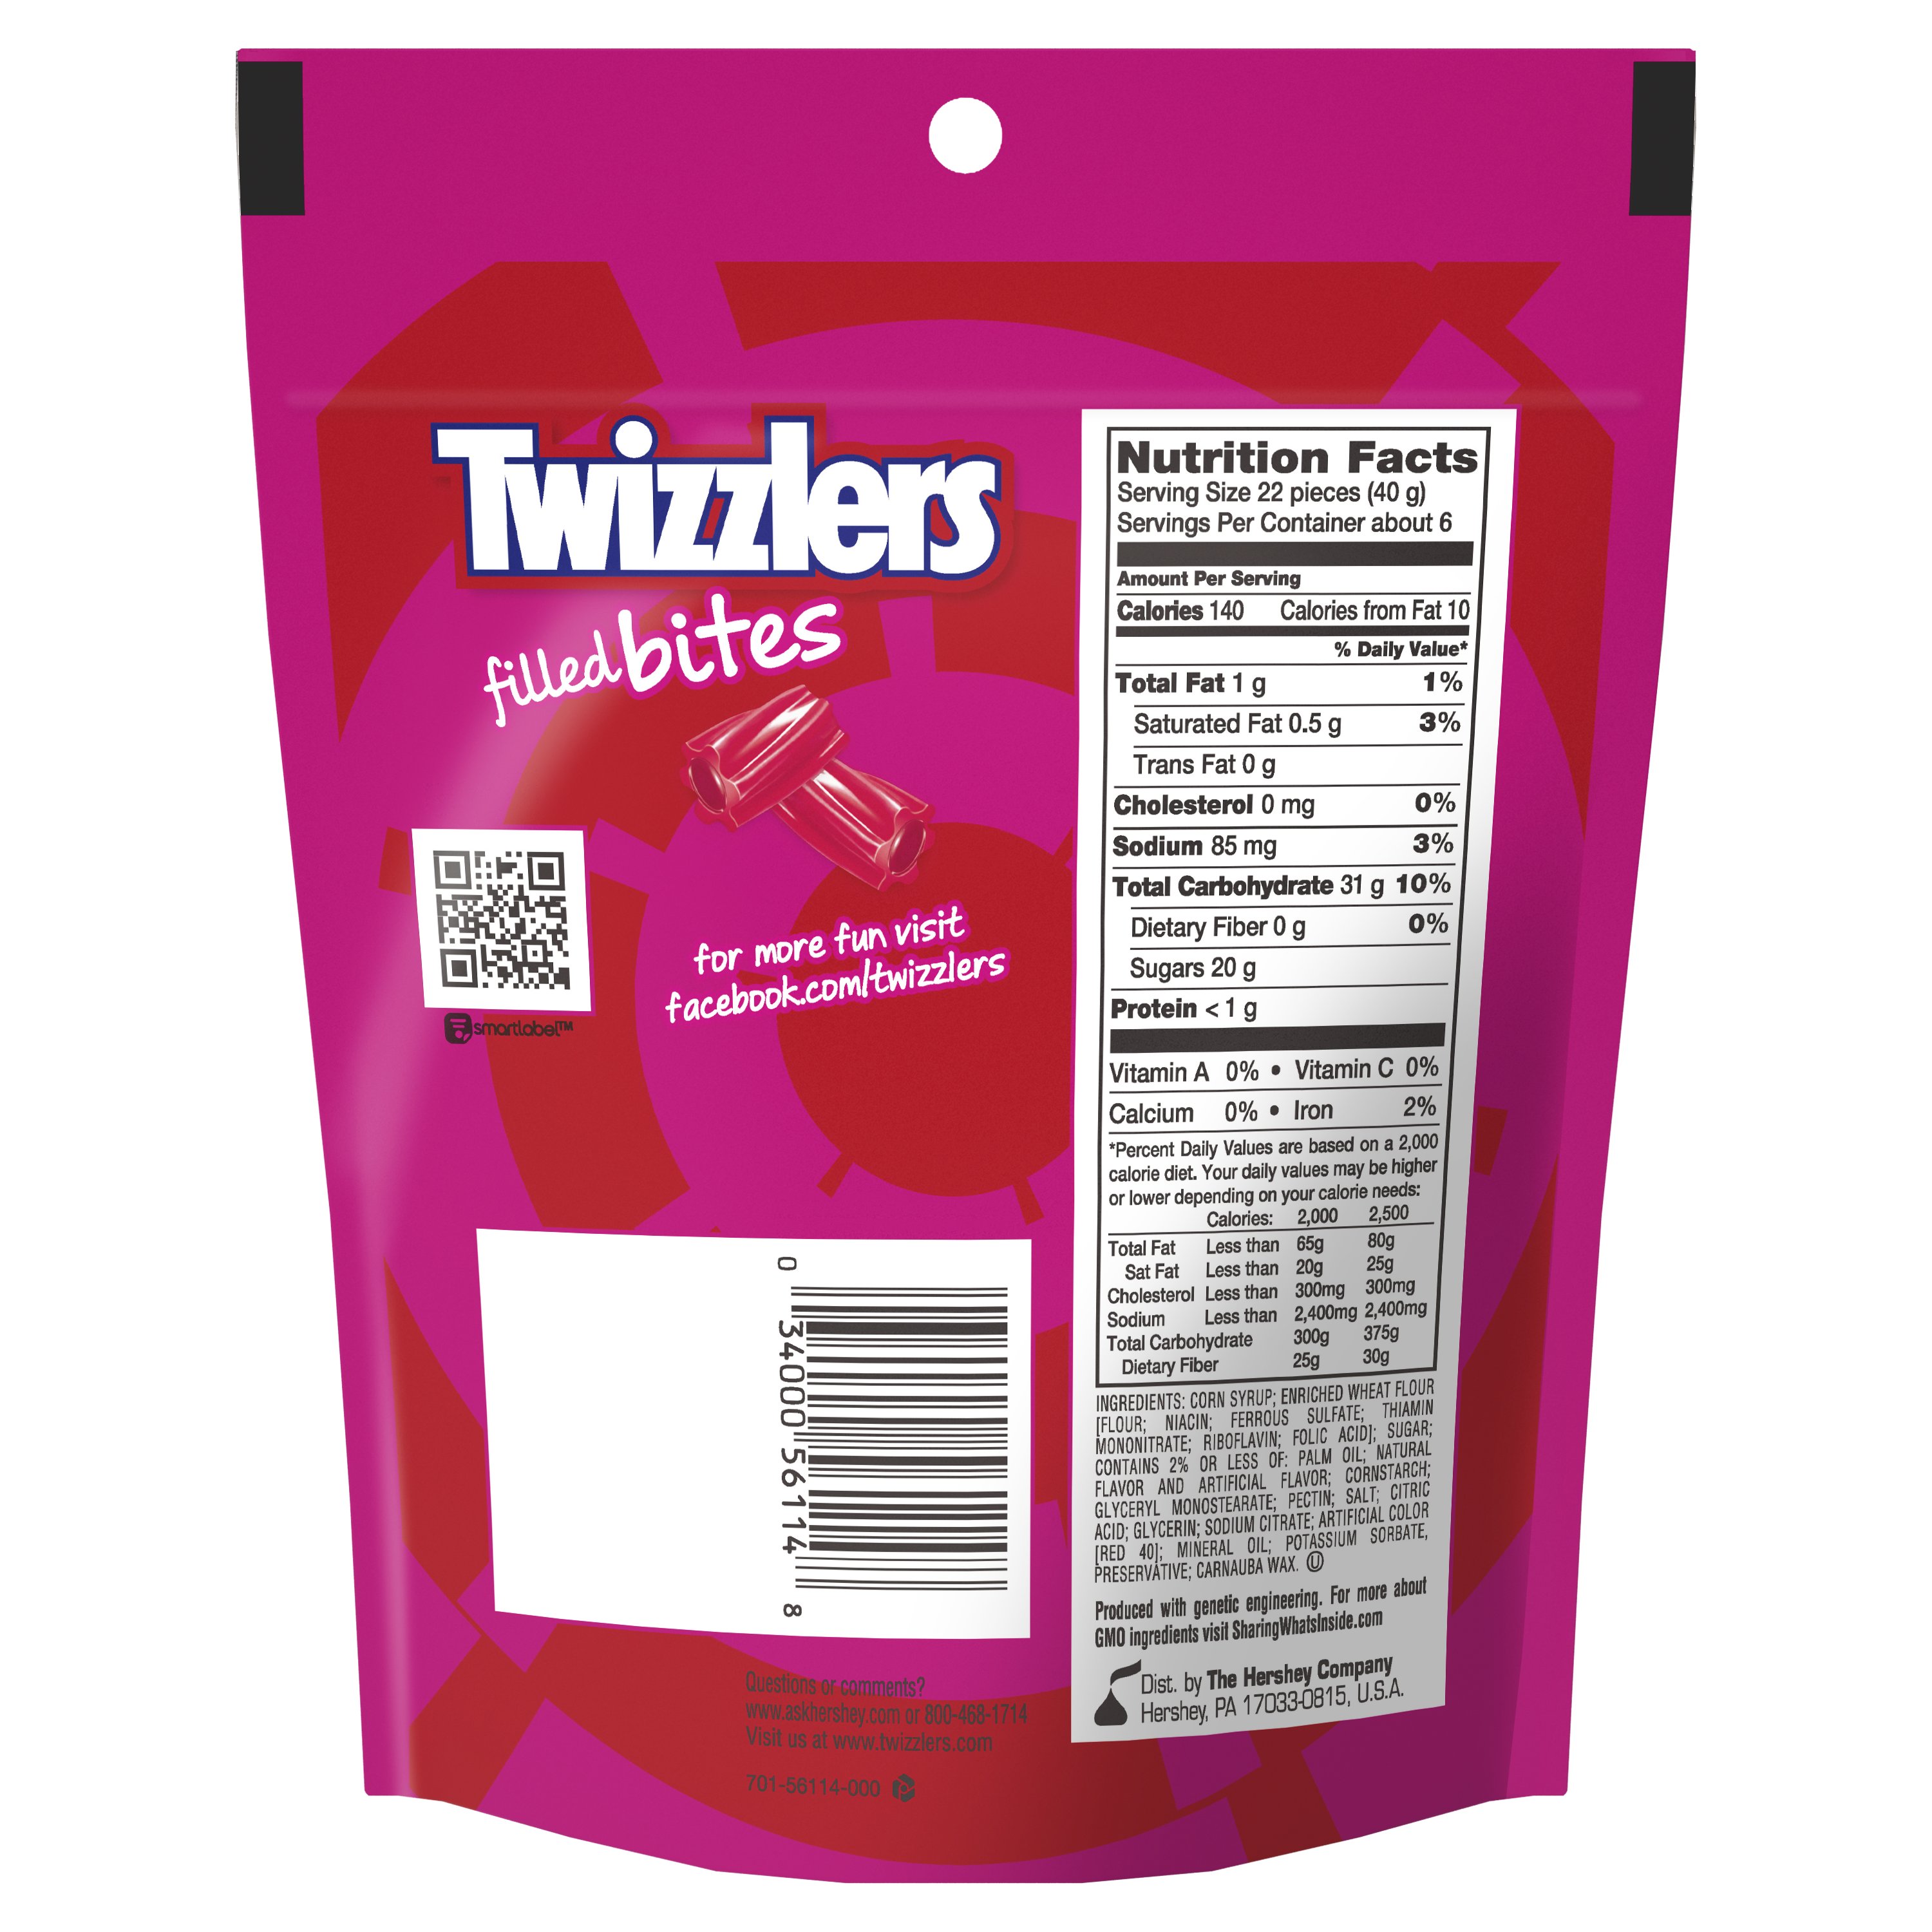 TWIZZLERS Filled Bites Strawberry Flavored Candy, 8 oz bag - Back of Package